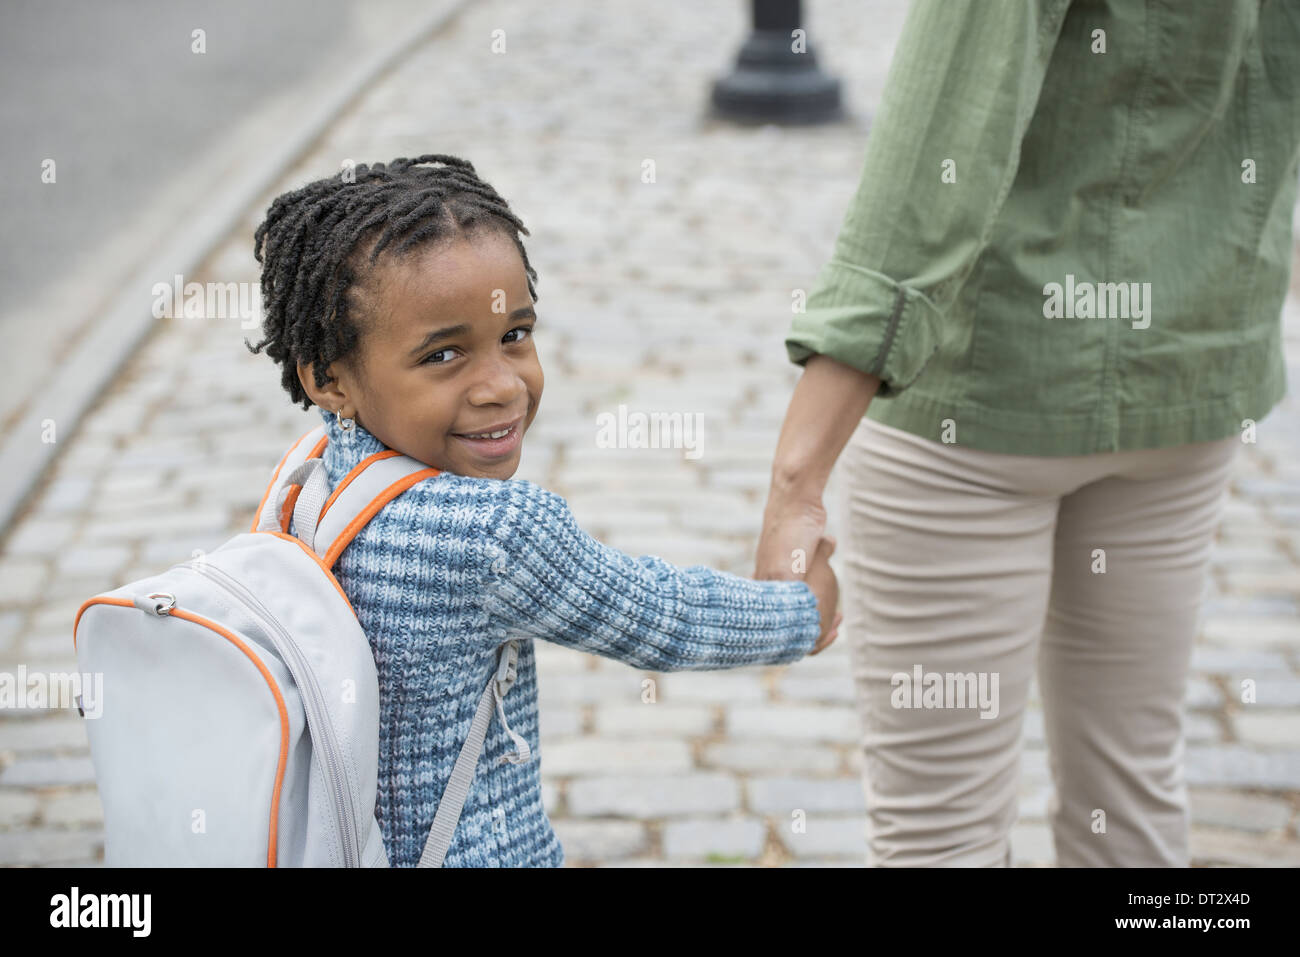 New York City Sunshine and cherry blossom A boy wearing a school bookbag and walking hand in hand with a woman - Stock Image